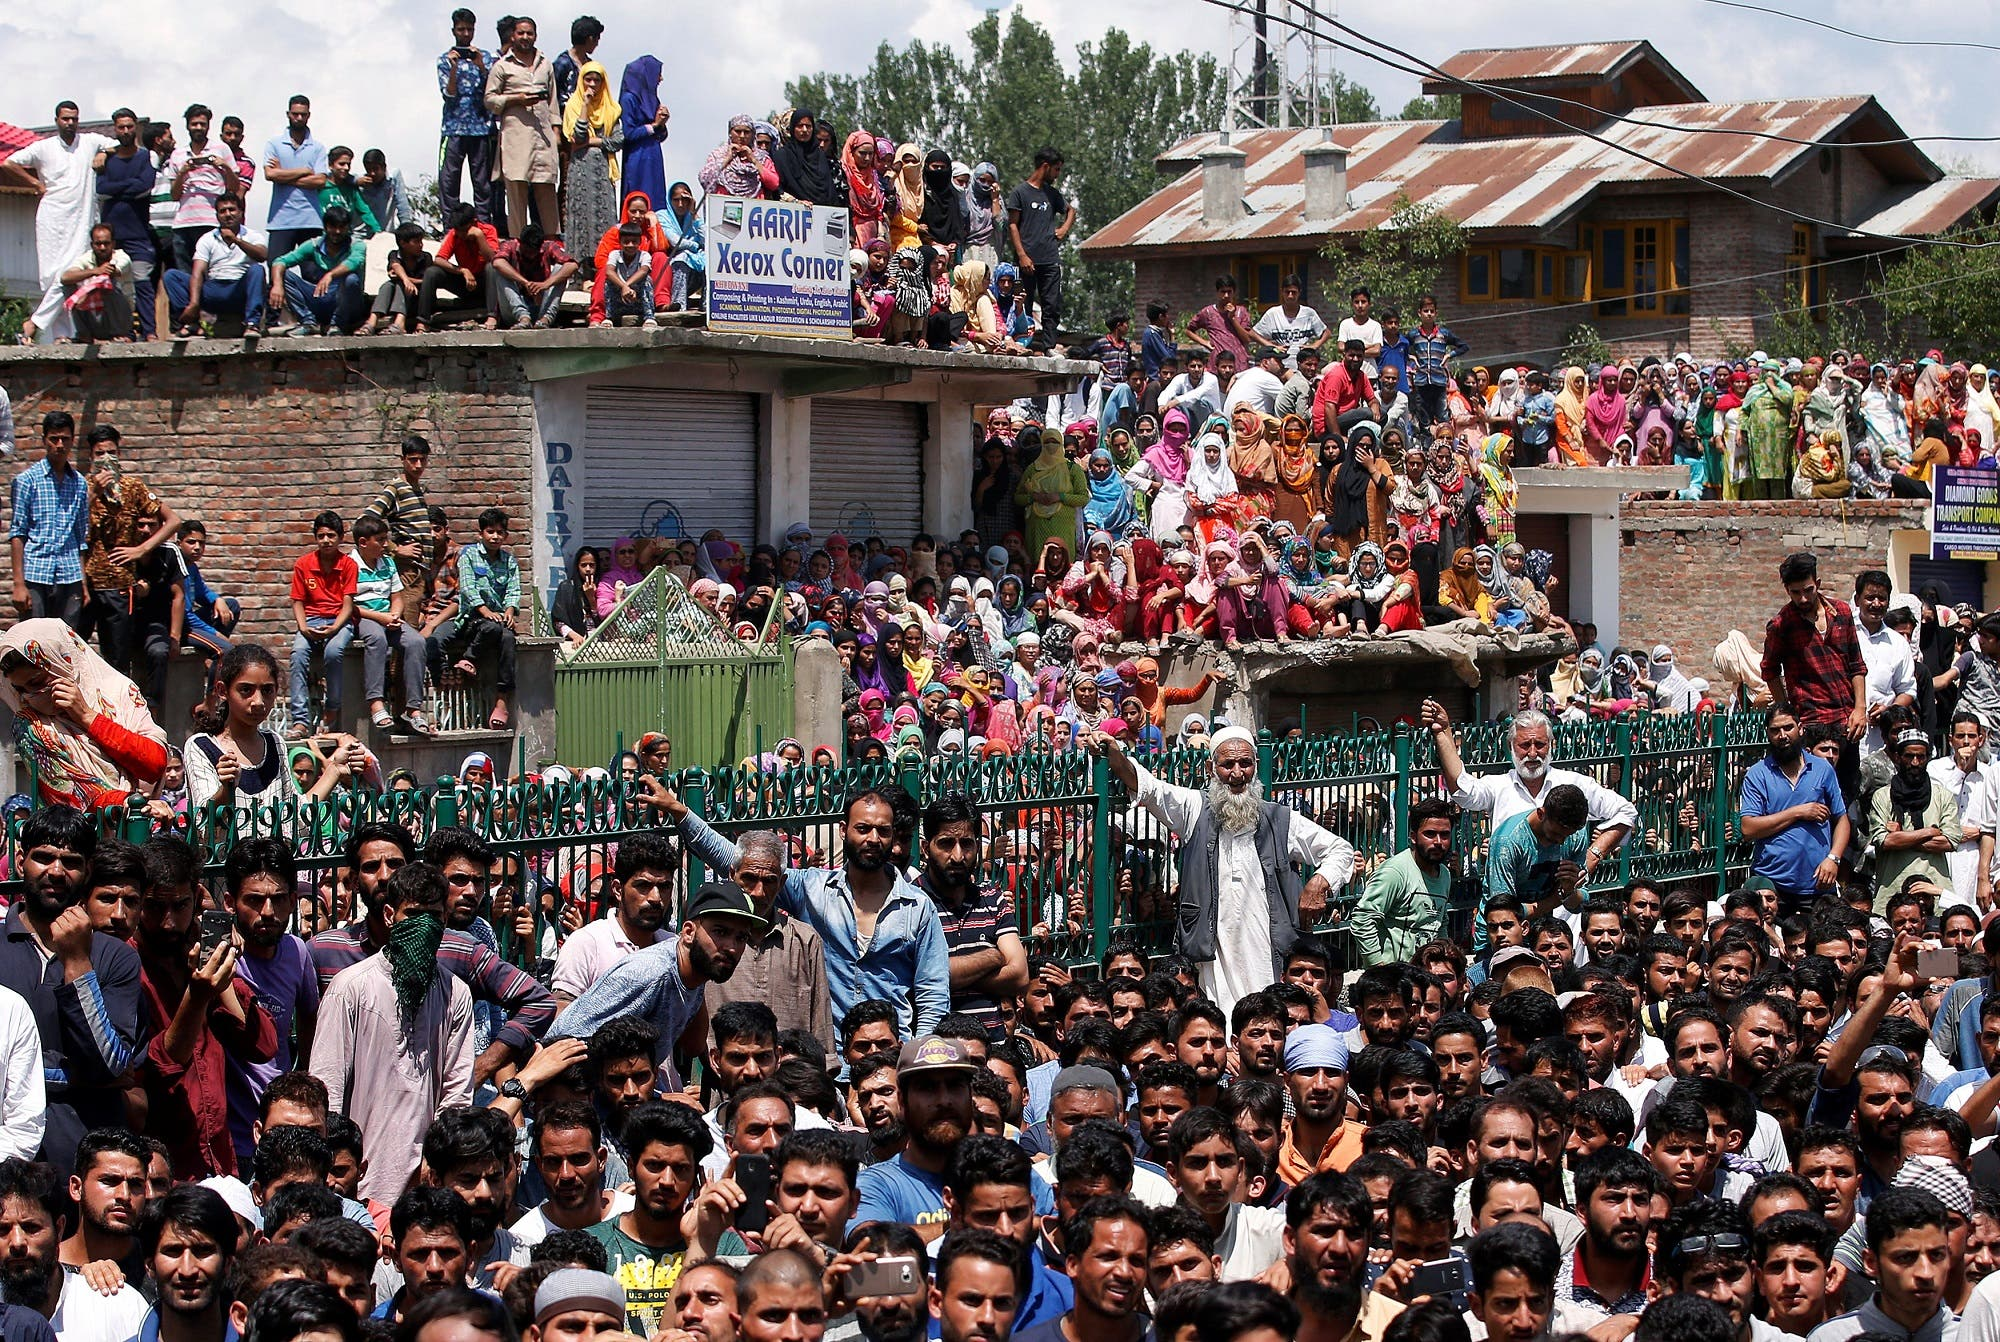 People watch the funeral of Bilal Ahmed, a suspected militant, who according to local media was killed in a gunbattle with Indian security forces, in Khudwani, in south Kashmir's Kulgam district, July 25, 2018. (Reuters)